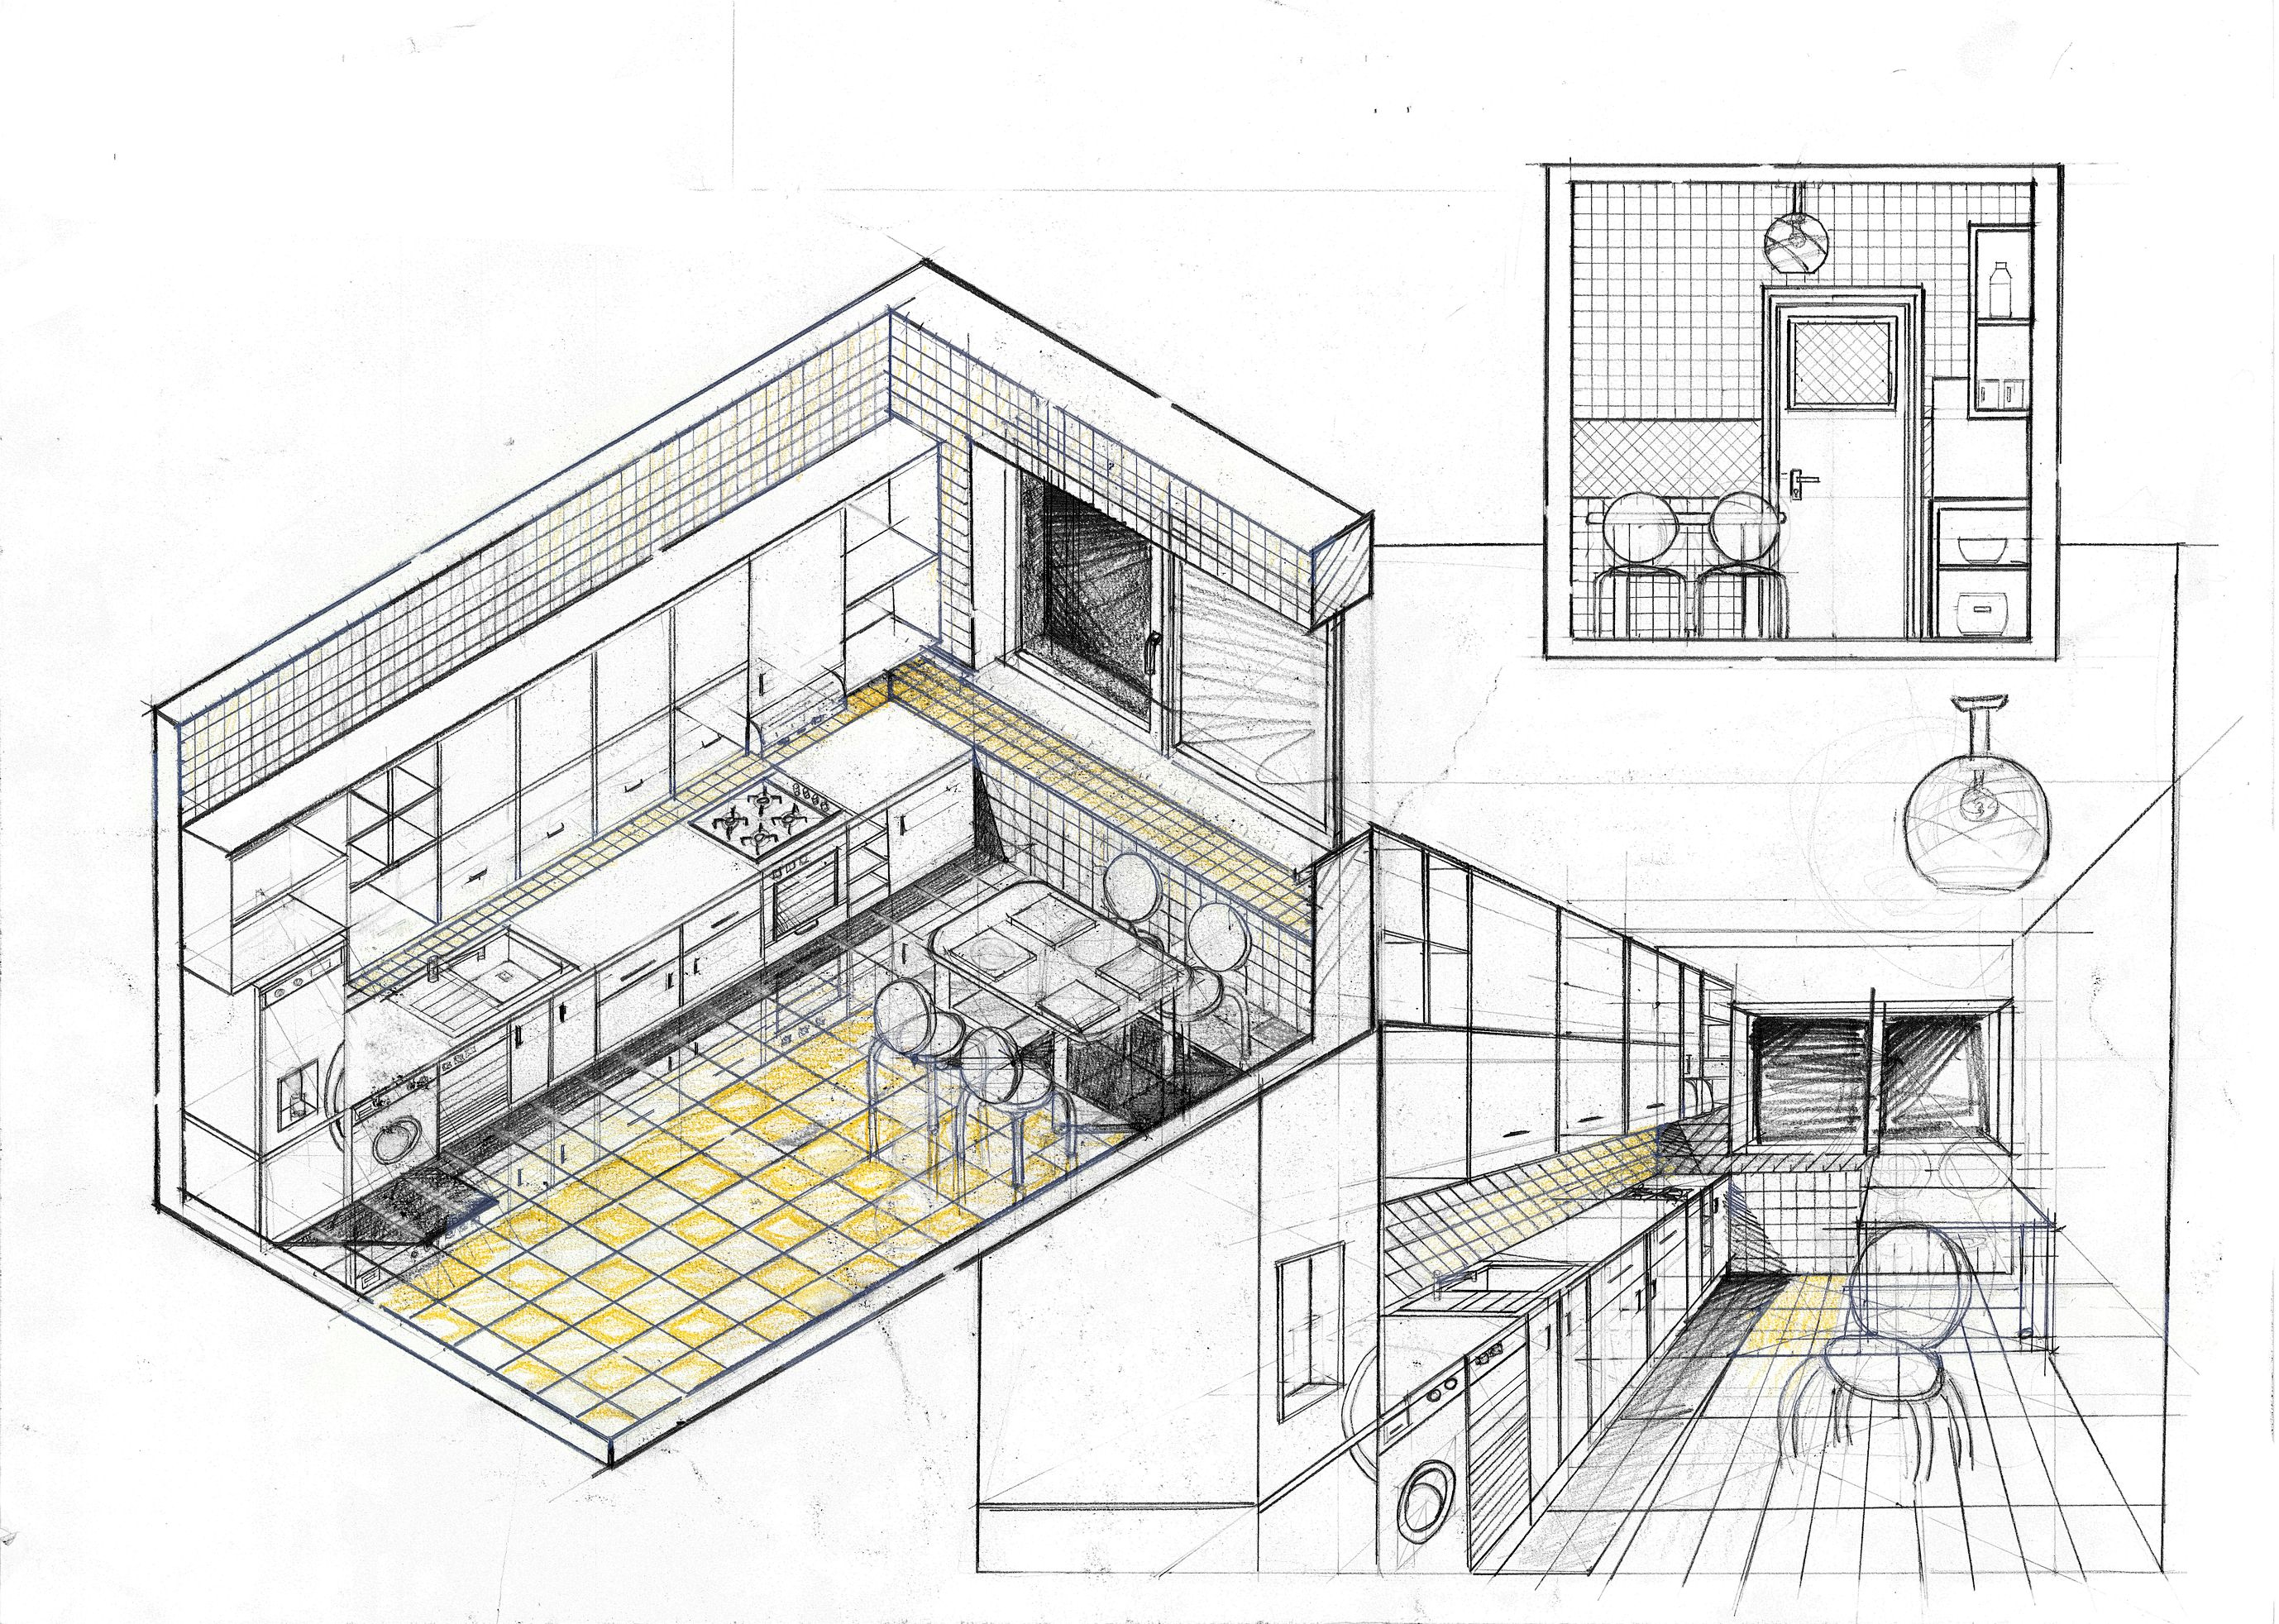 Kitchen design fairly standard design approach good sheet layout though pencil colored crayons on 50x70 standard paper 5 hours completion time